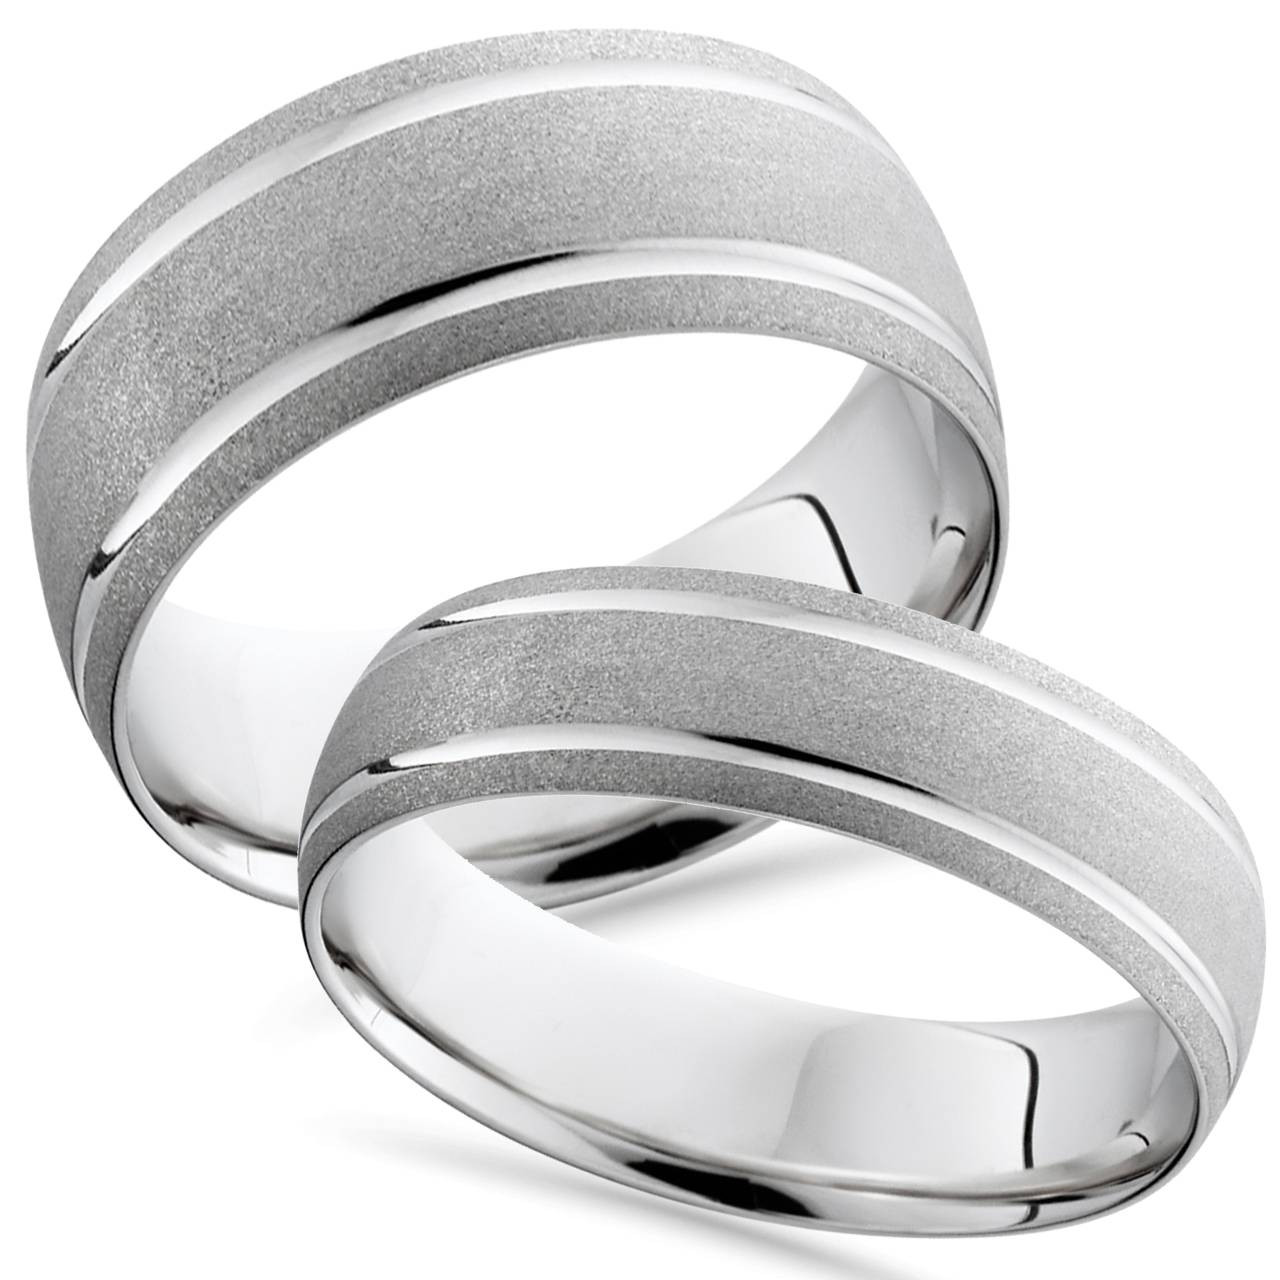 10K White Gold Matching His Hers Brushed Comfort Fit Wedding Band